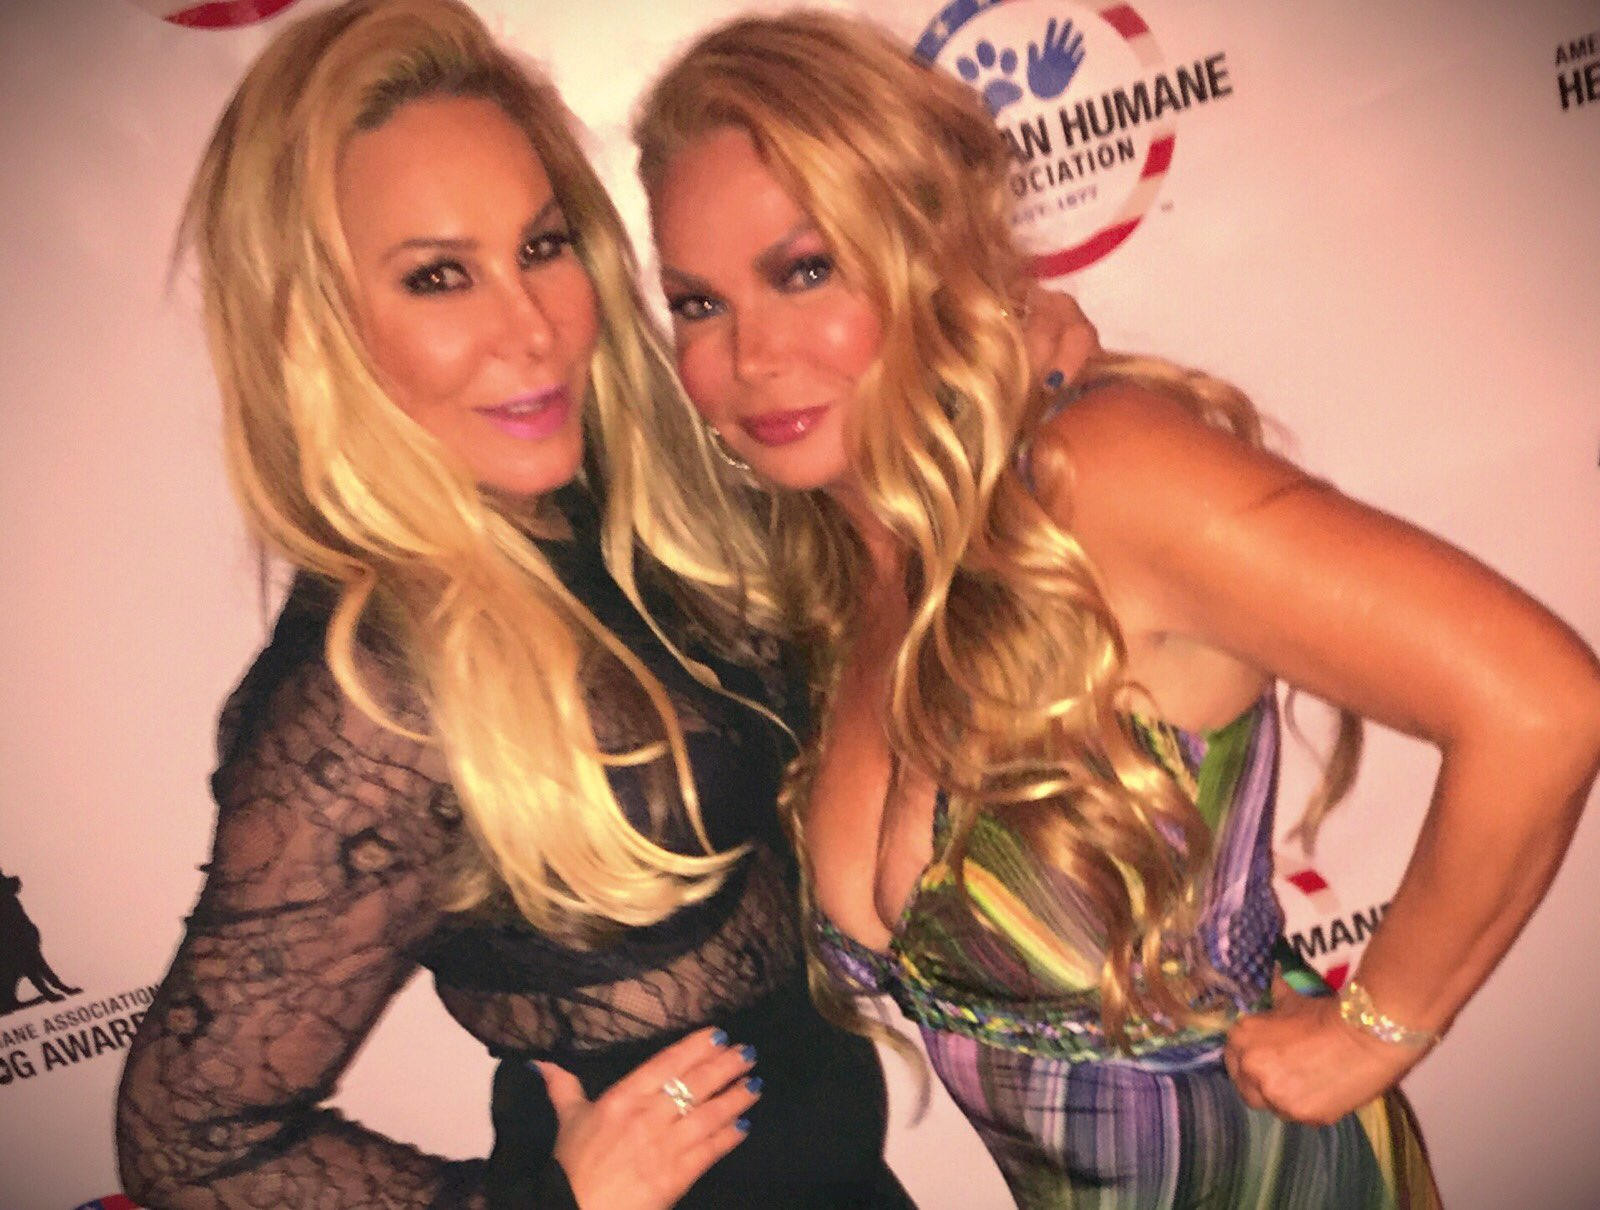 Dinner @AdrienneMaloof for #dogs #trained for #veteranshealth! @TheRealCamilleG @MomicJoanie @melissaprophet @andy